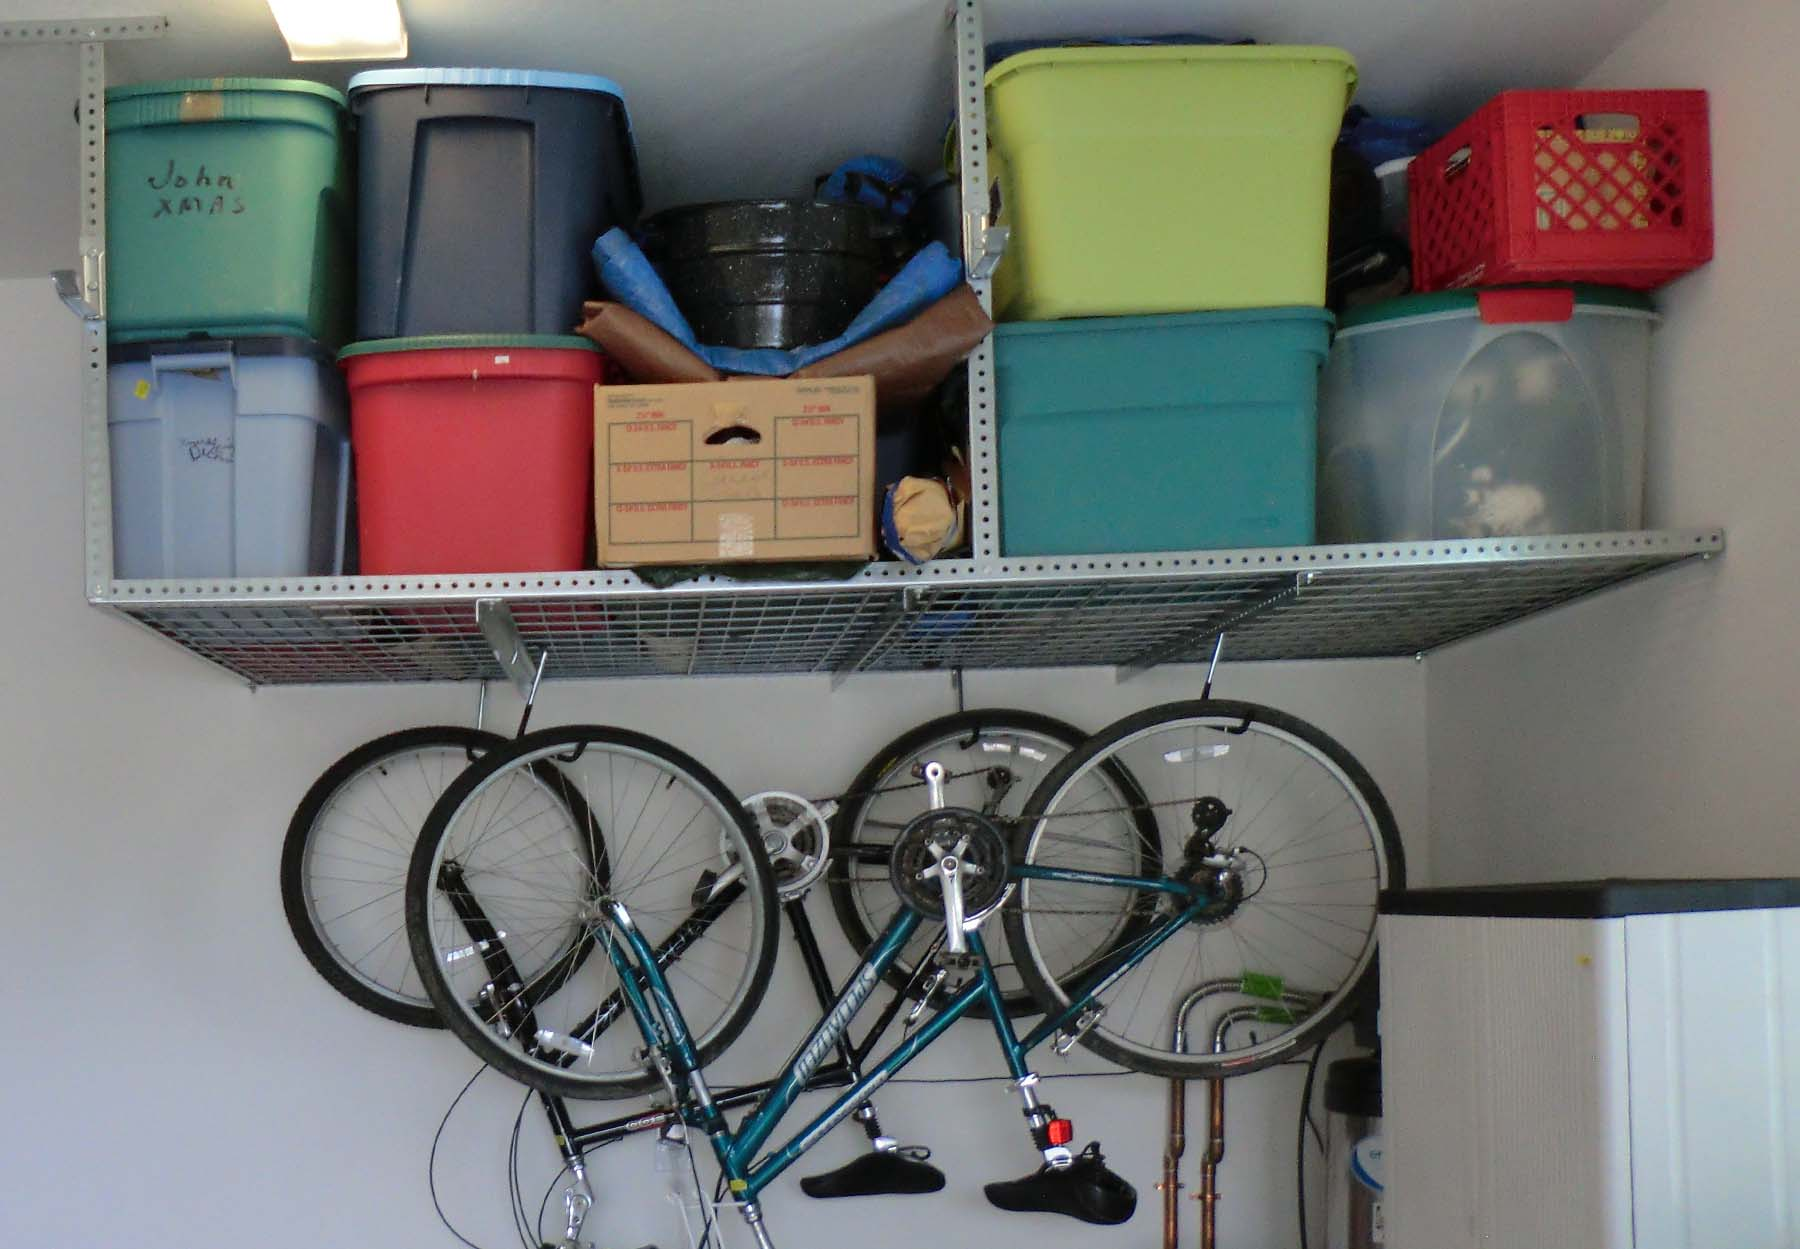 Ceiling Storage Racks with Accessory Hooks for Bikes